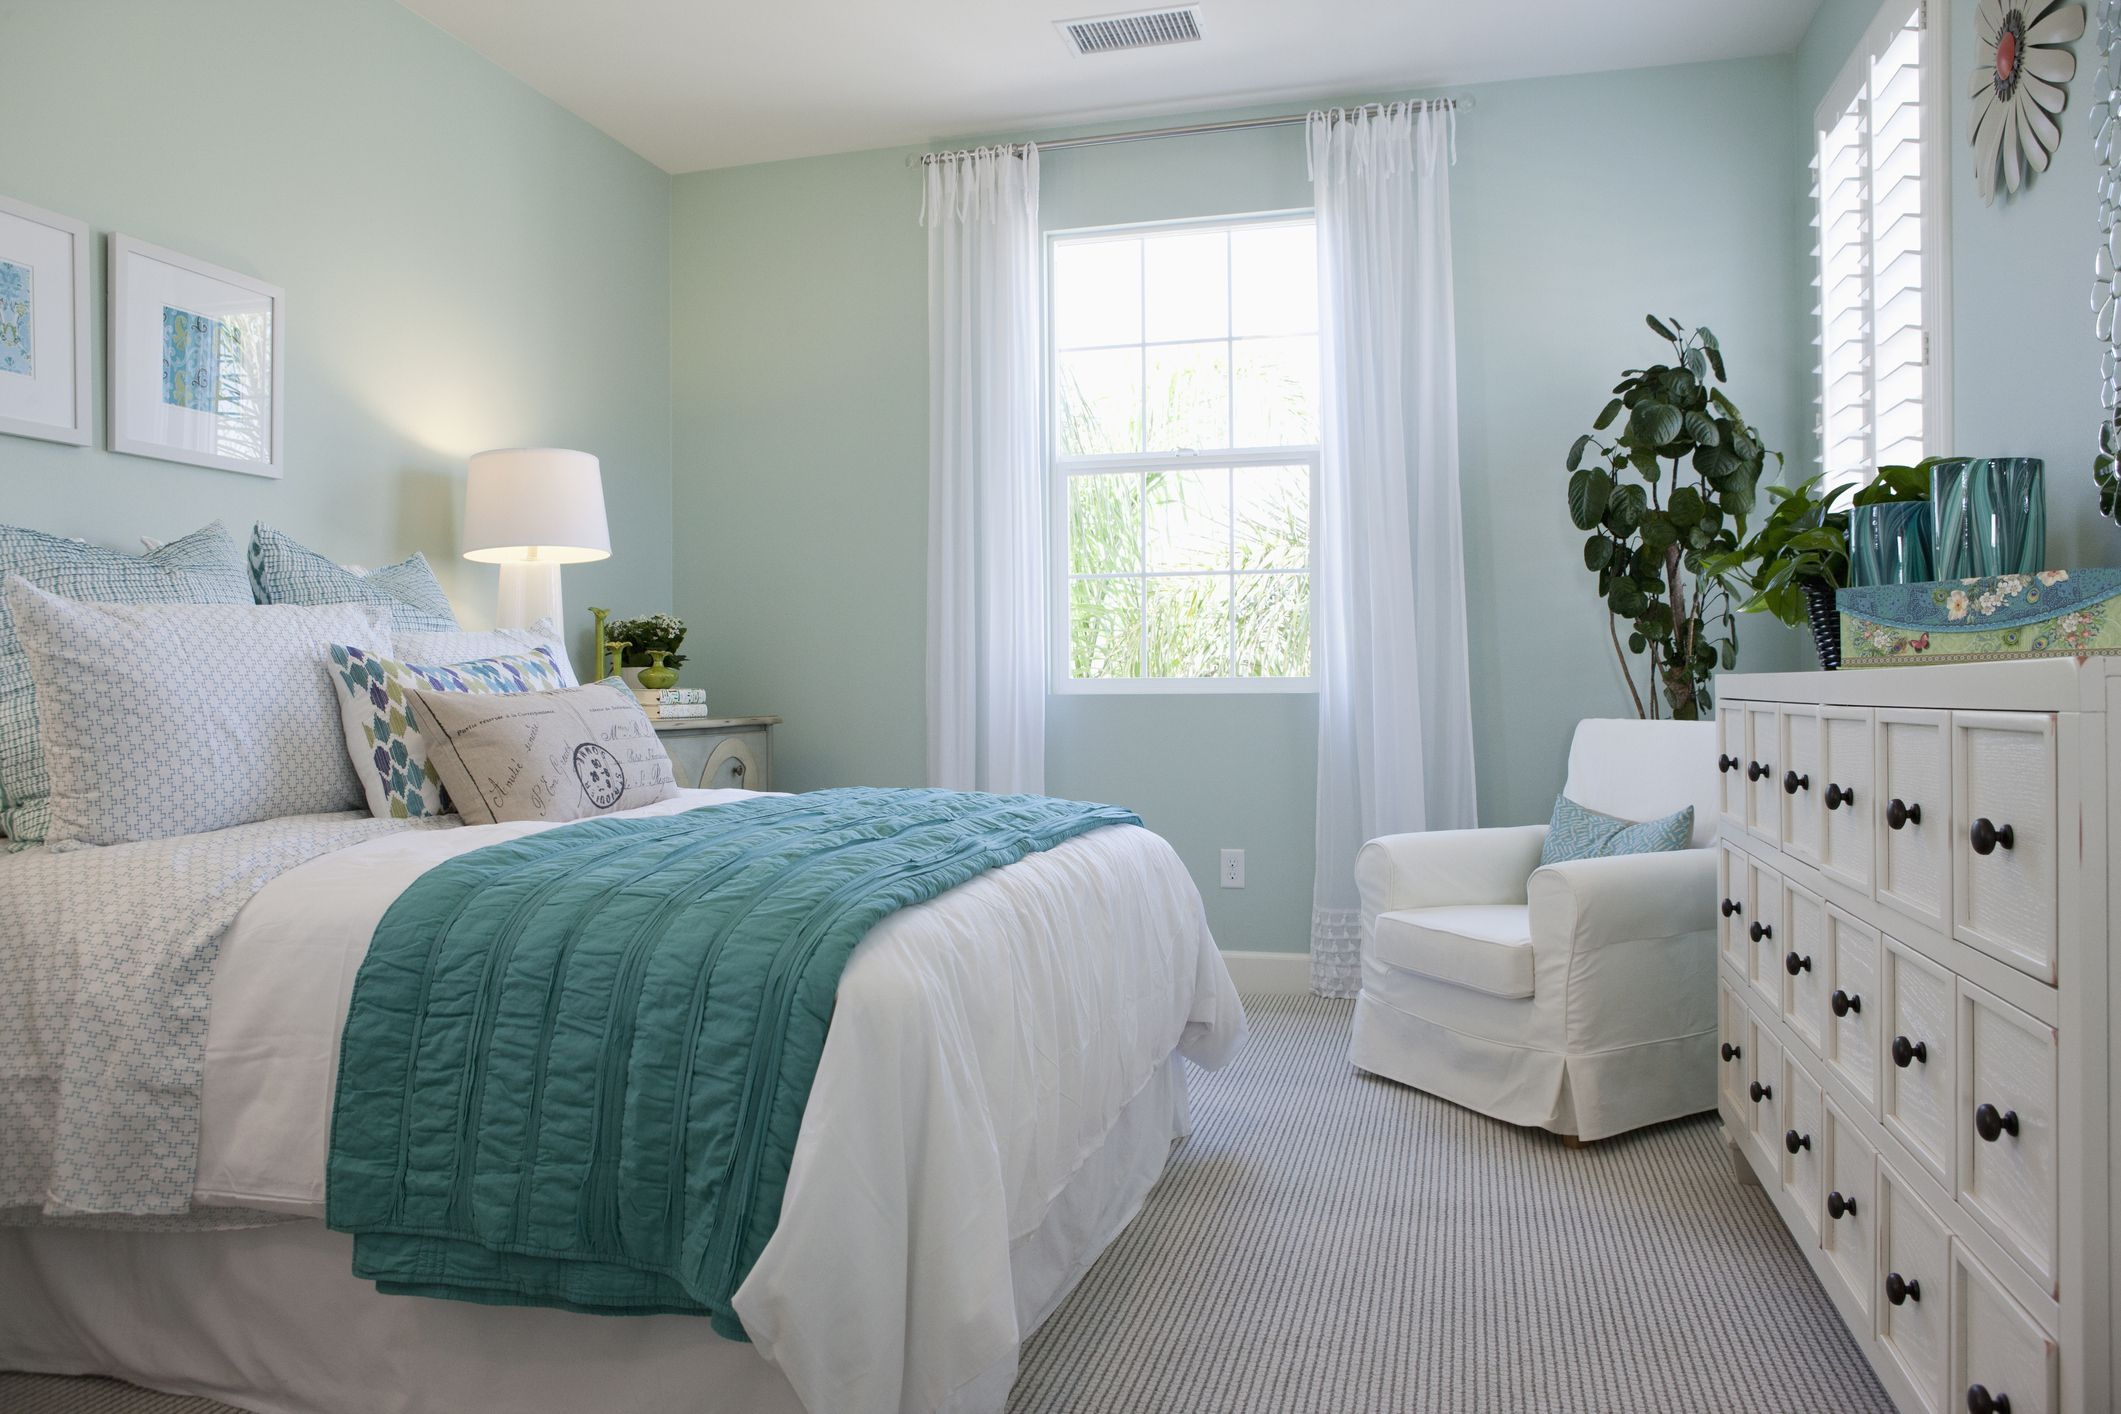 Bright Bedroom With Pale Green Walls And White Furniture Paint Colors For Your Room 2121x1414 Download Hd Wallpaper Wallpapertip